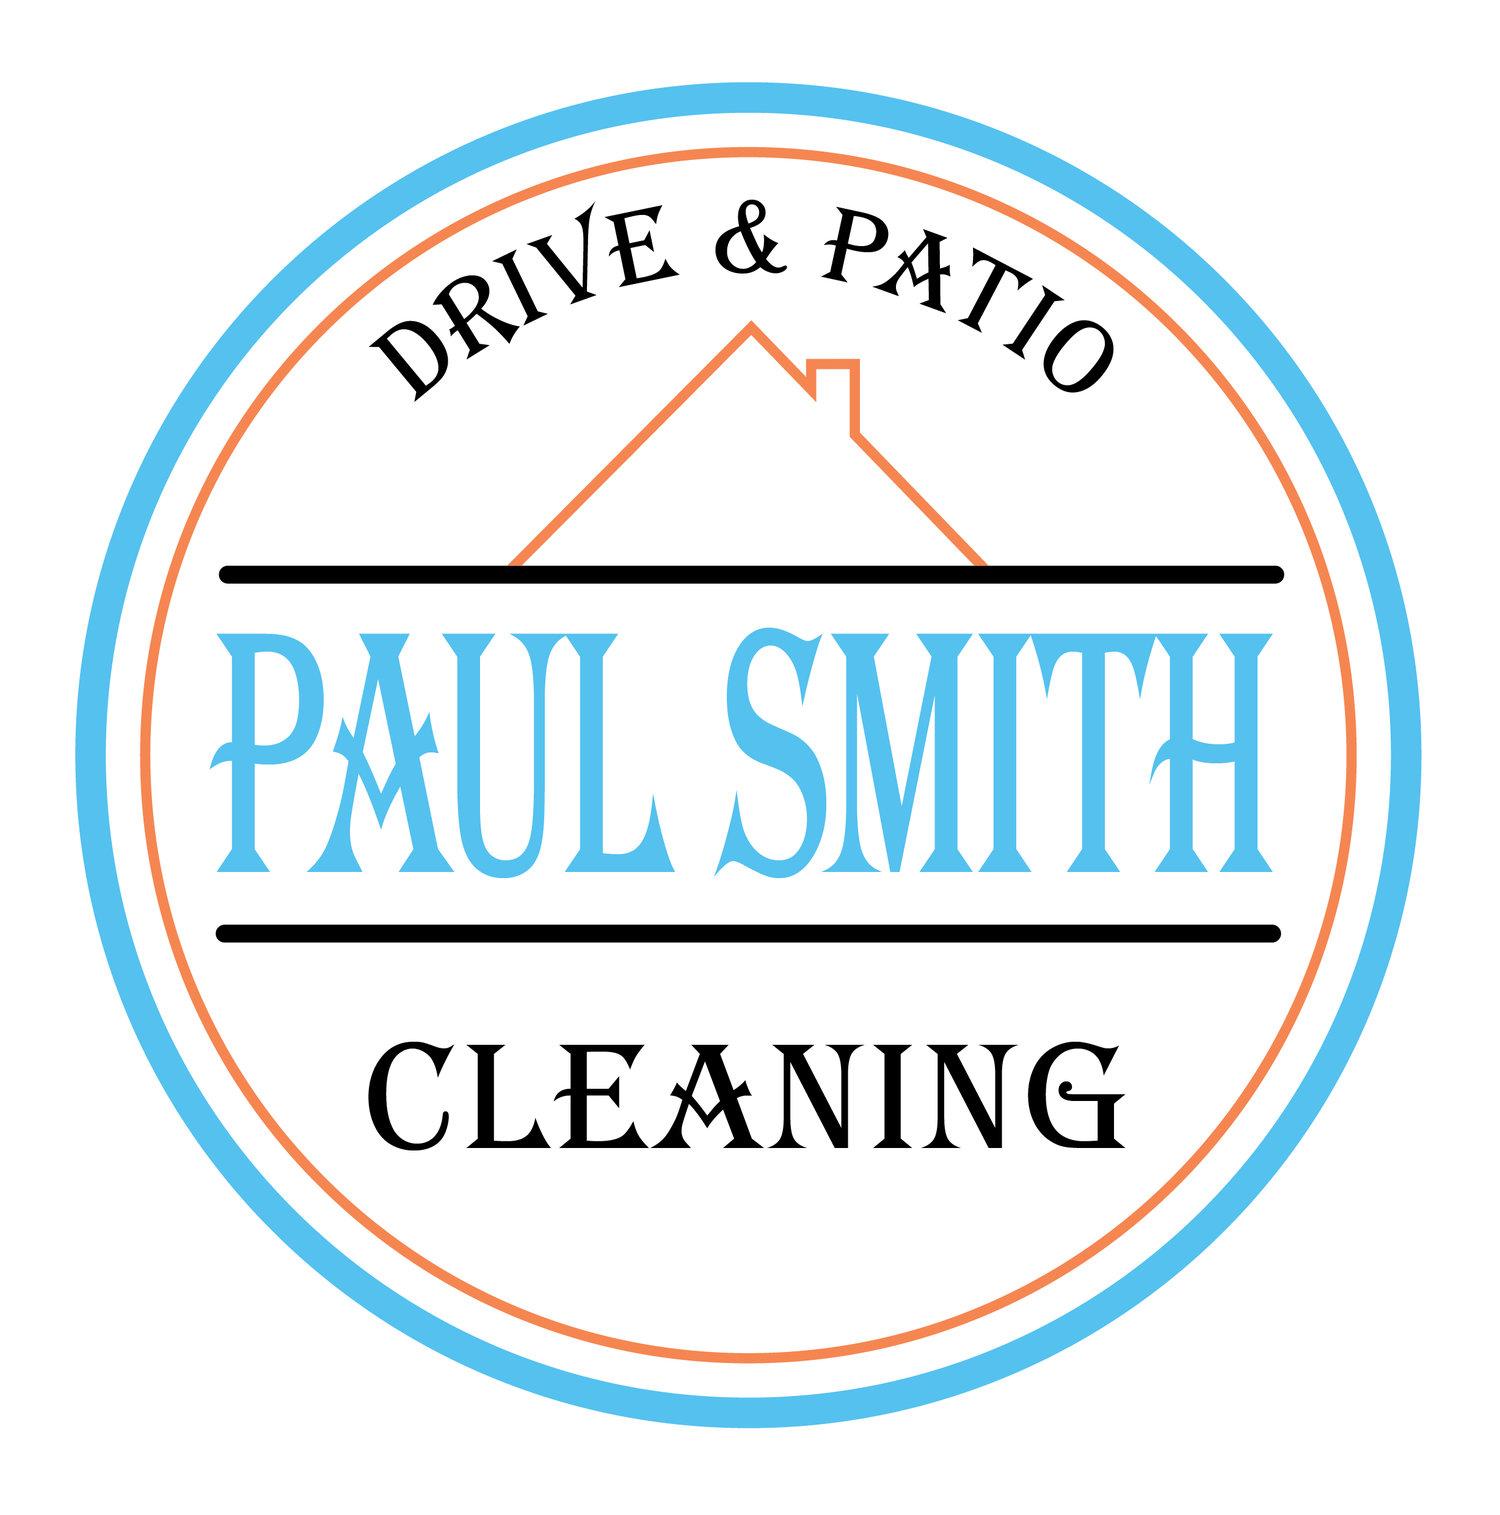 Paul Smith Drive and Patio Cleaning